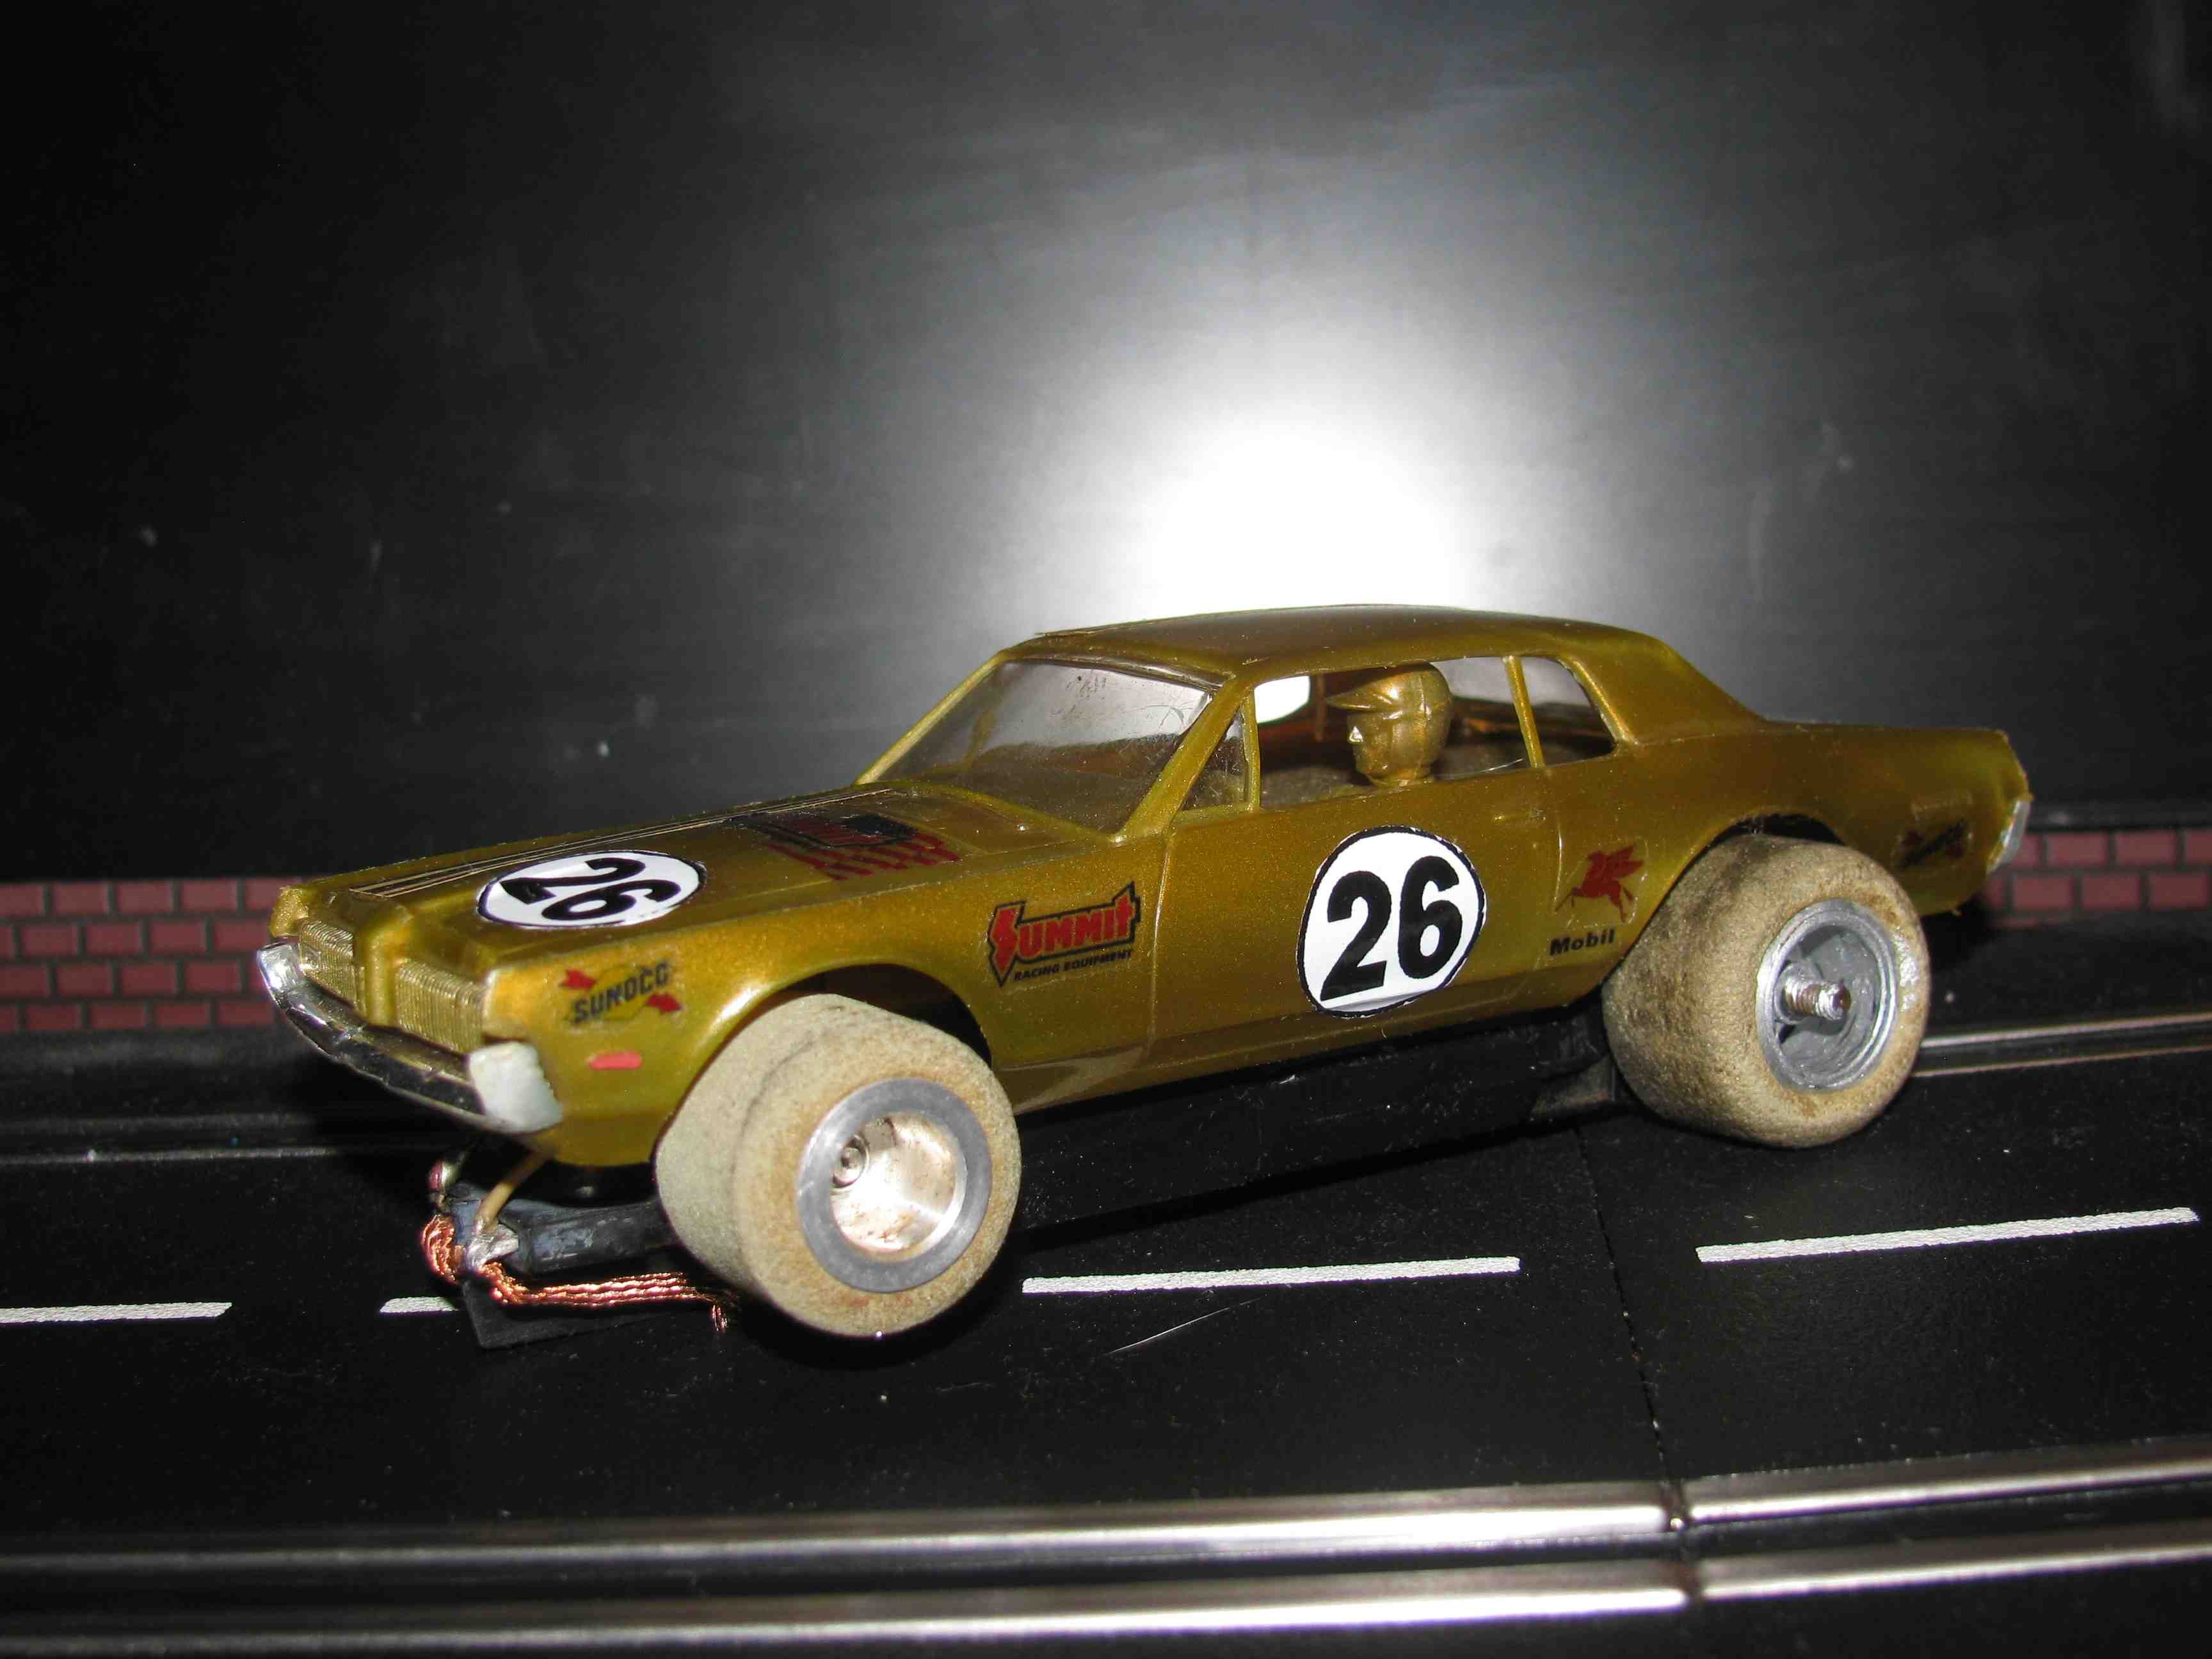 * SOLD * Vintage Revell Camaro Slot Car 1/32 Scale – Gold – Car 26